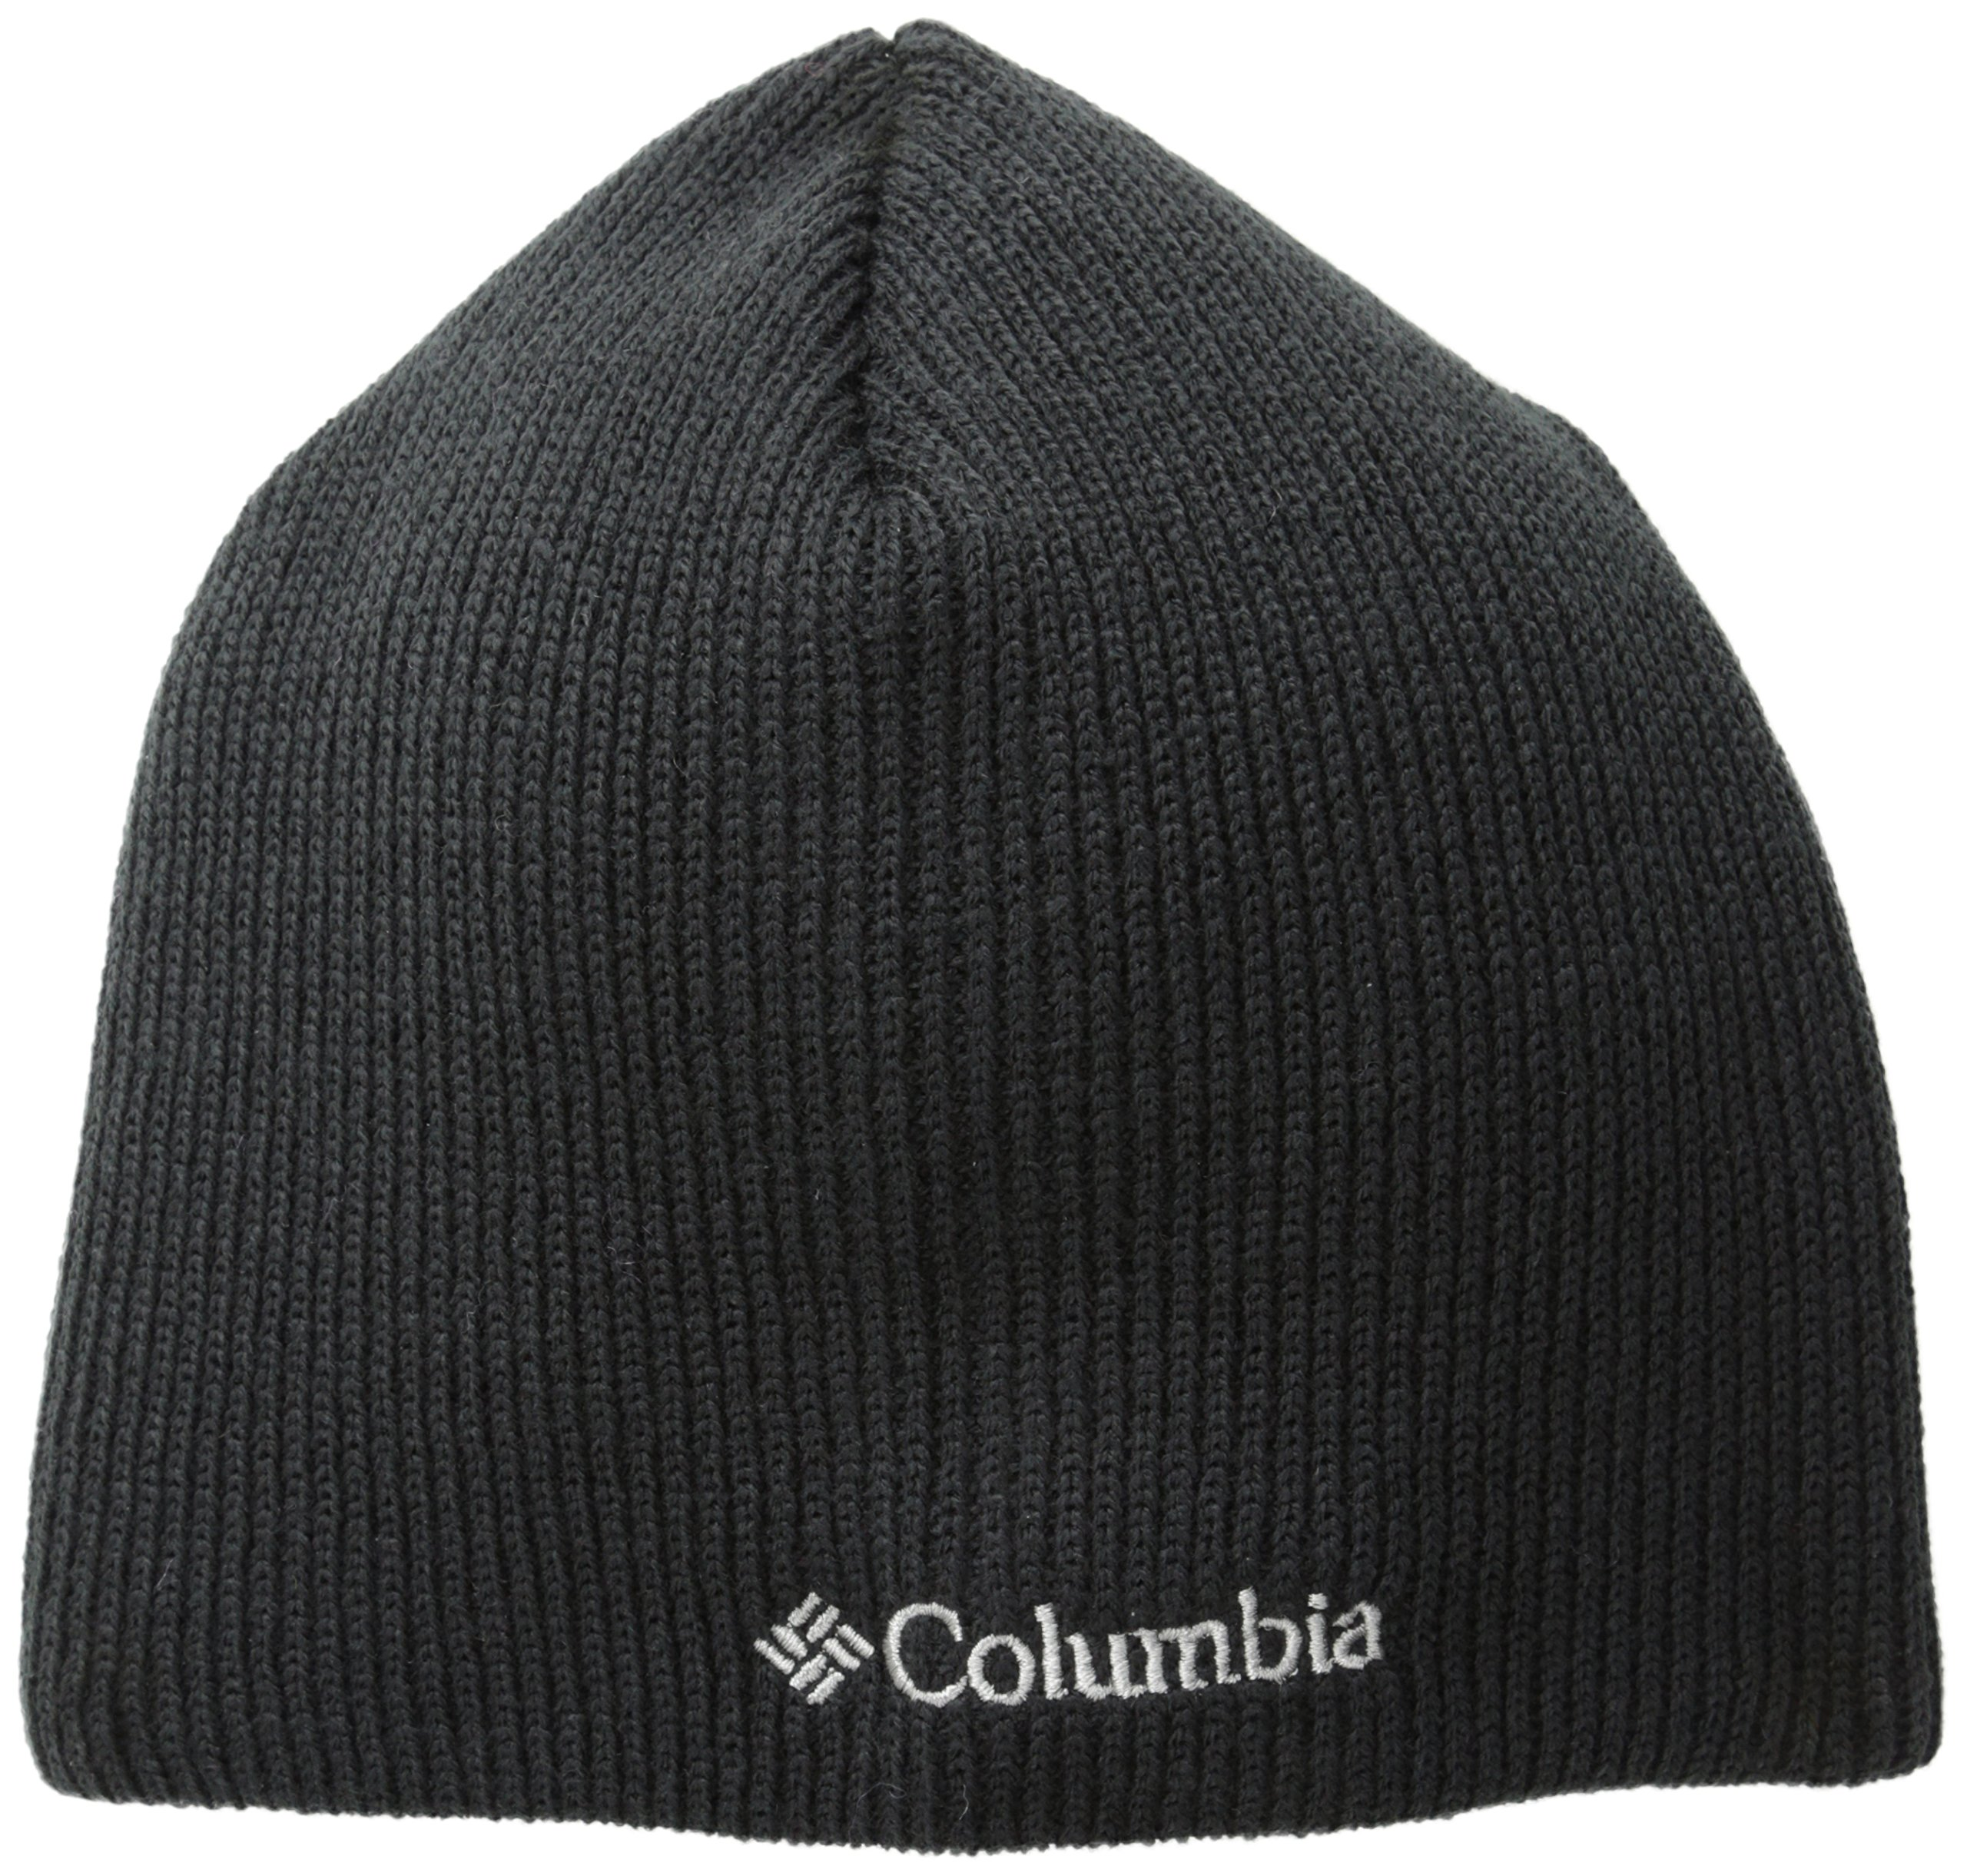 Columbia Men's Whirlibird Watch Cap Beanie, Black/White, One Size